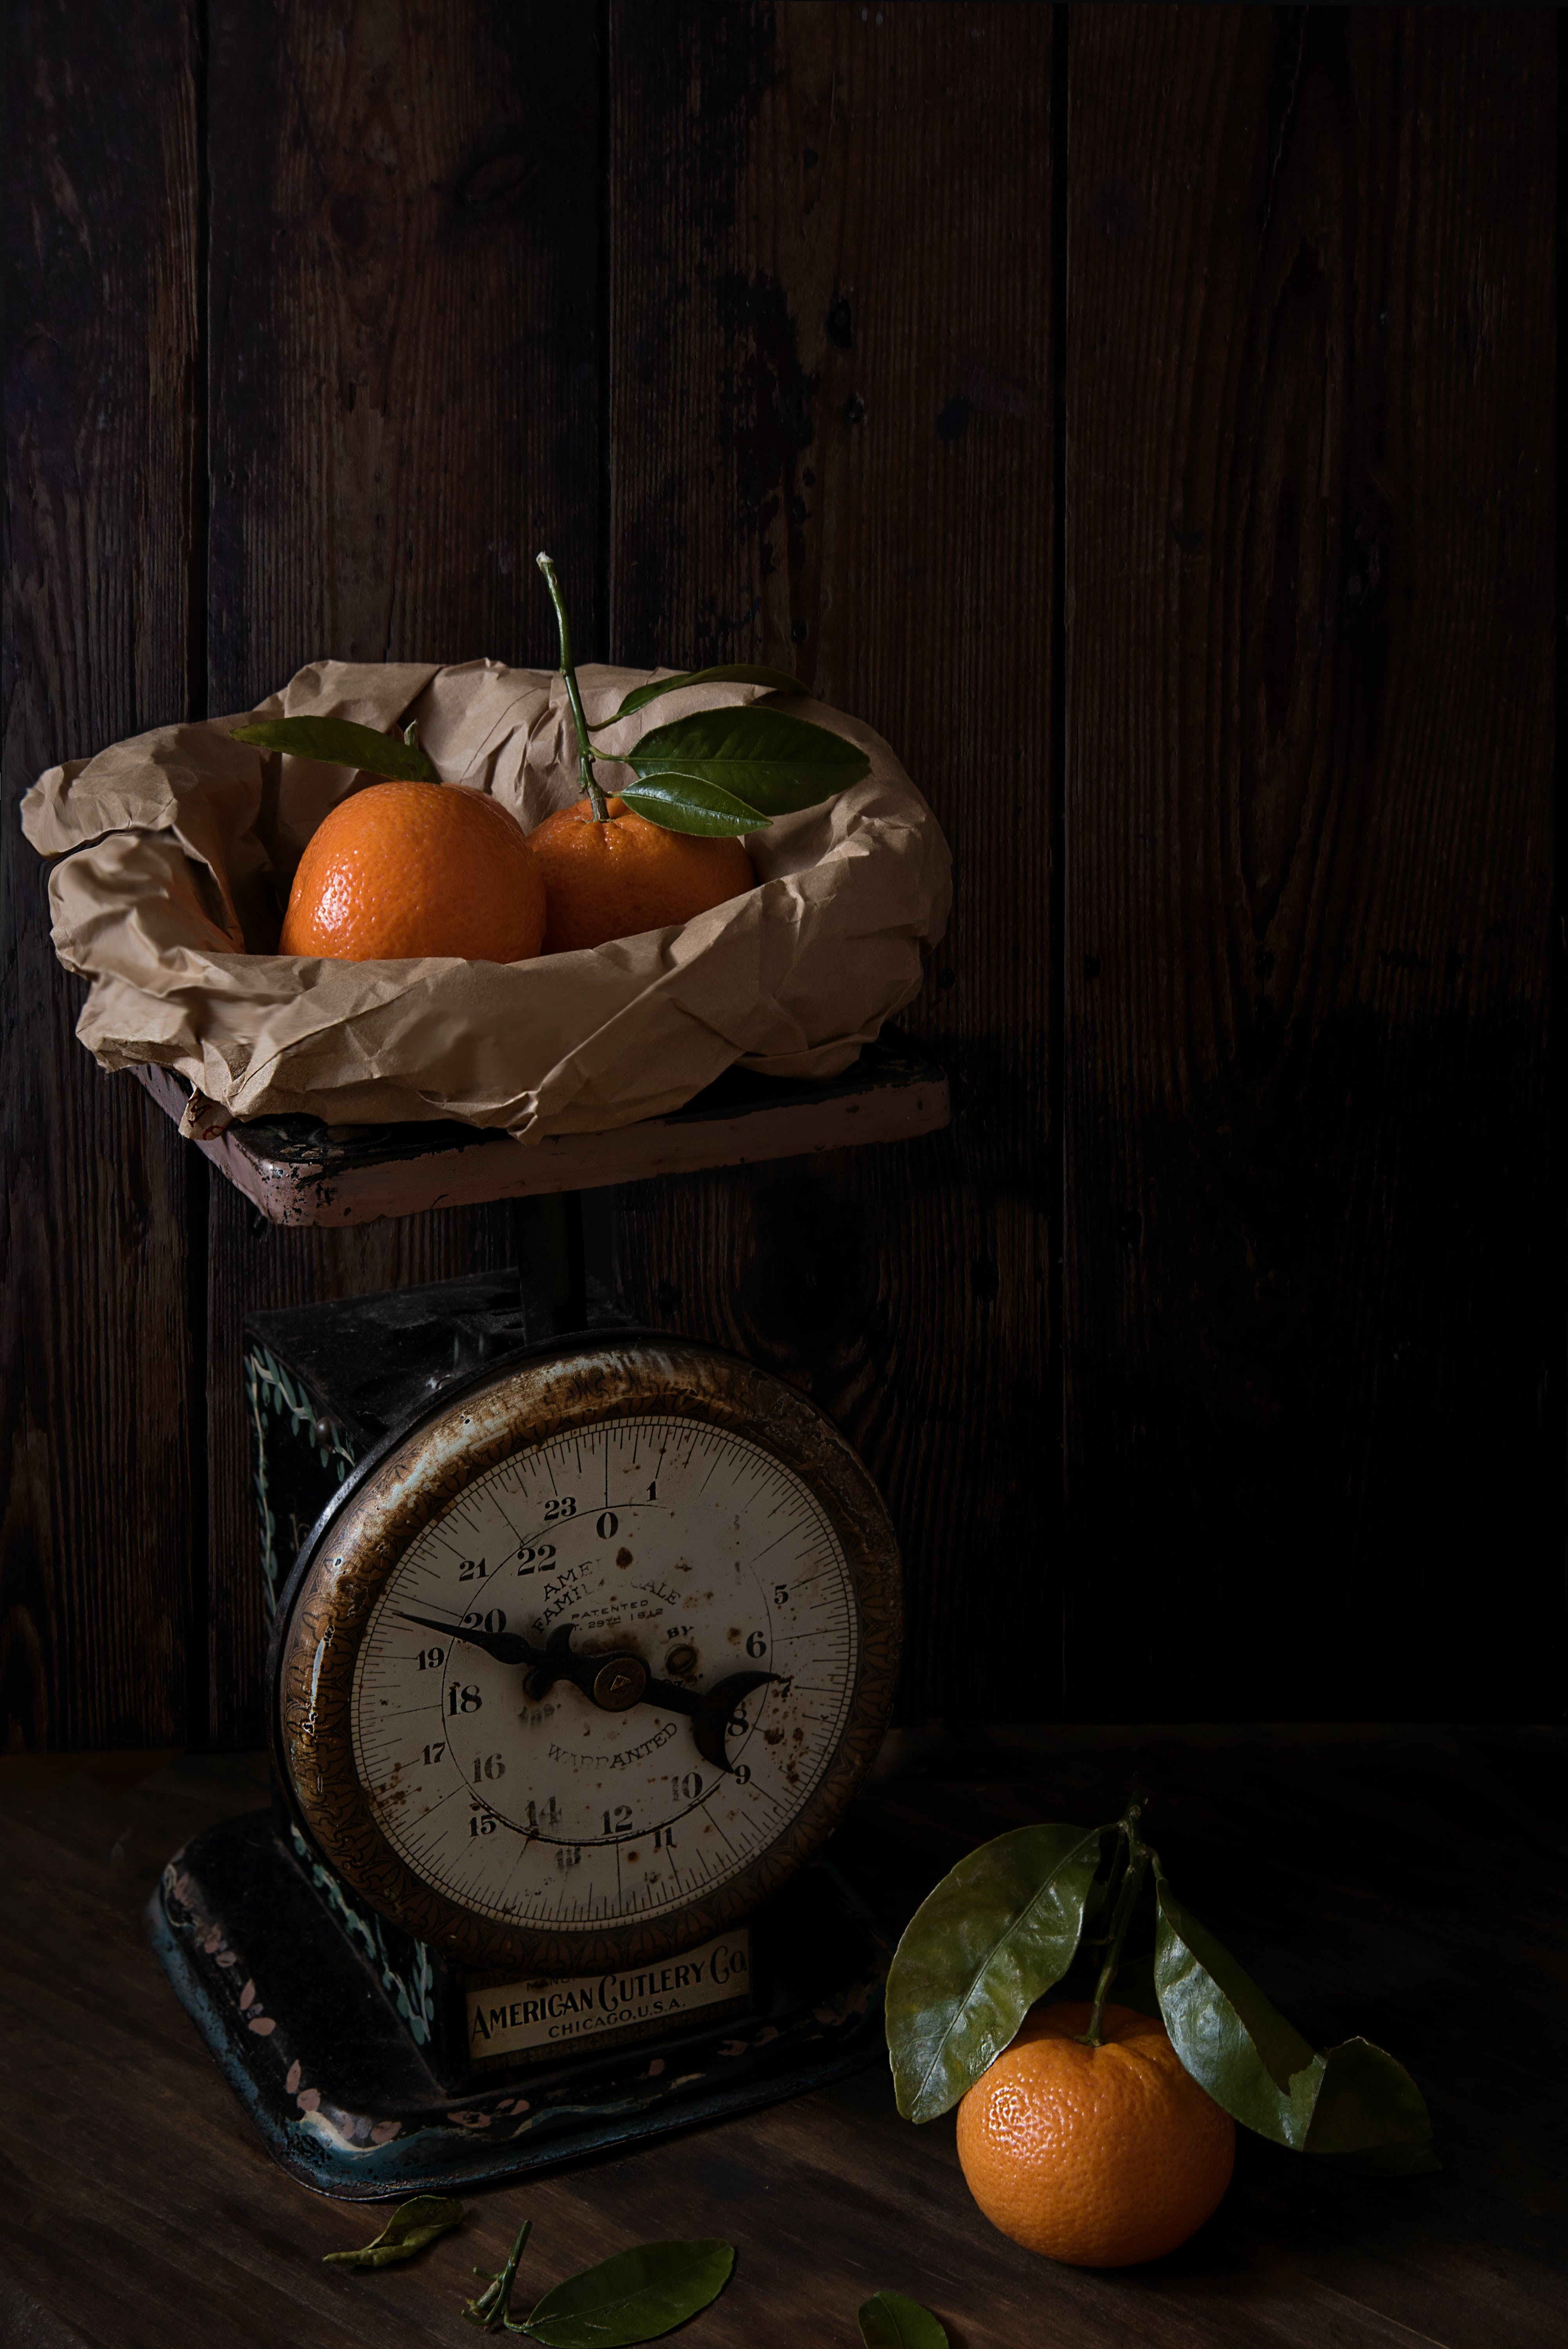 Three Orange Fruits and Analog Scale